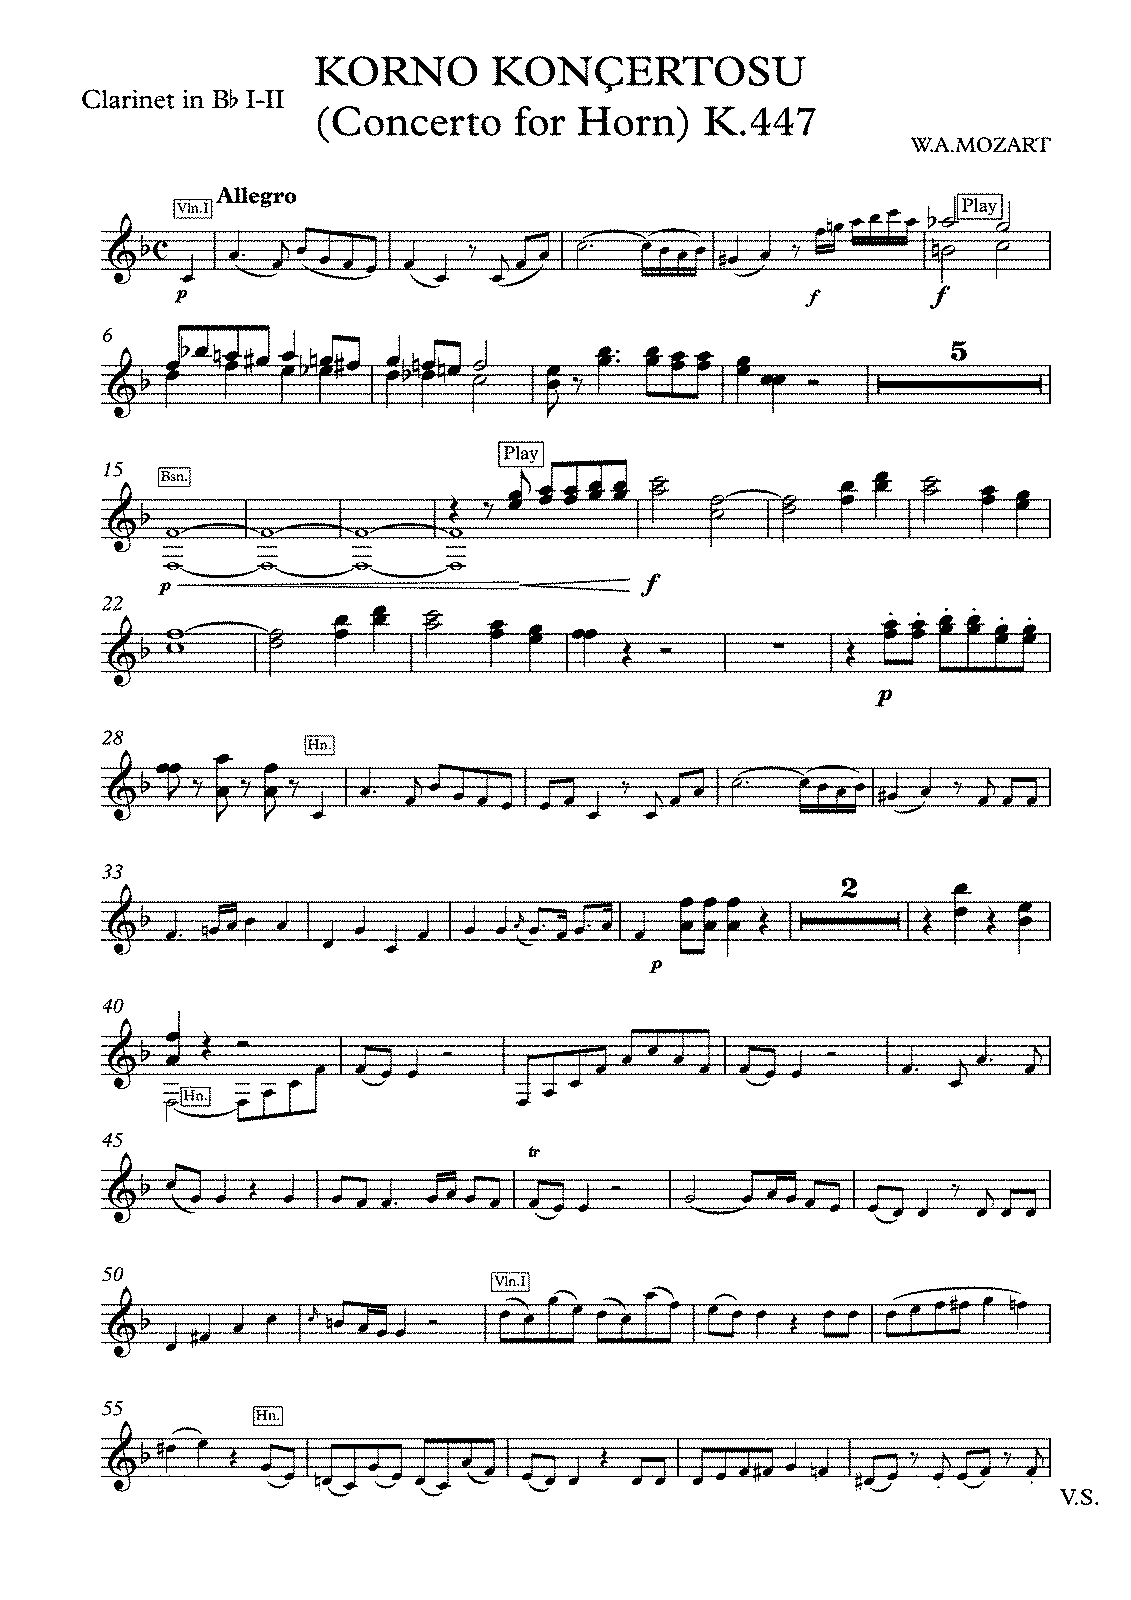 PMLP04594-Concerto in Eb For Horn (Extract Parts) - Clarinet in Bb I-II.pdf